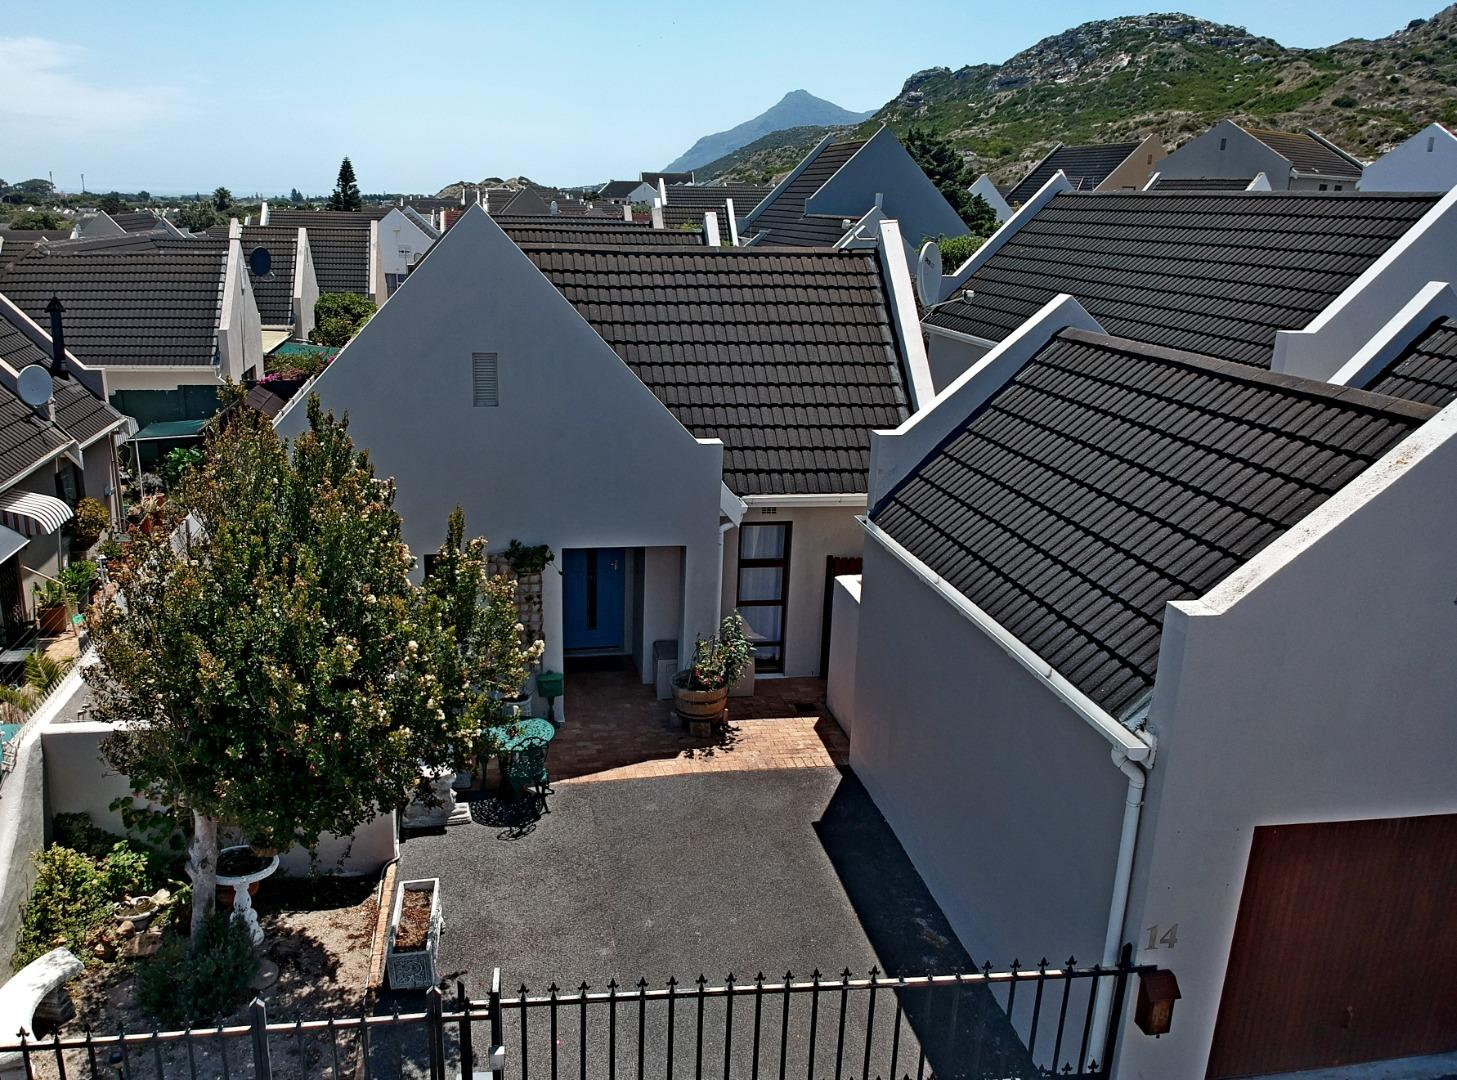 3 Bedroom  House for Sale in Fish Hoek - Western Cape